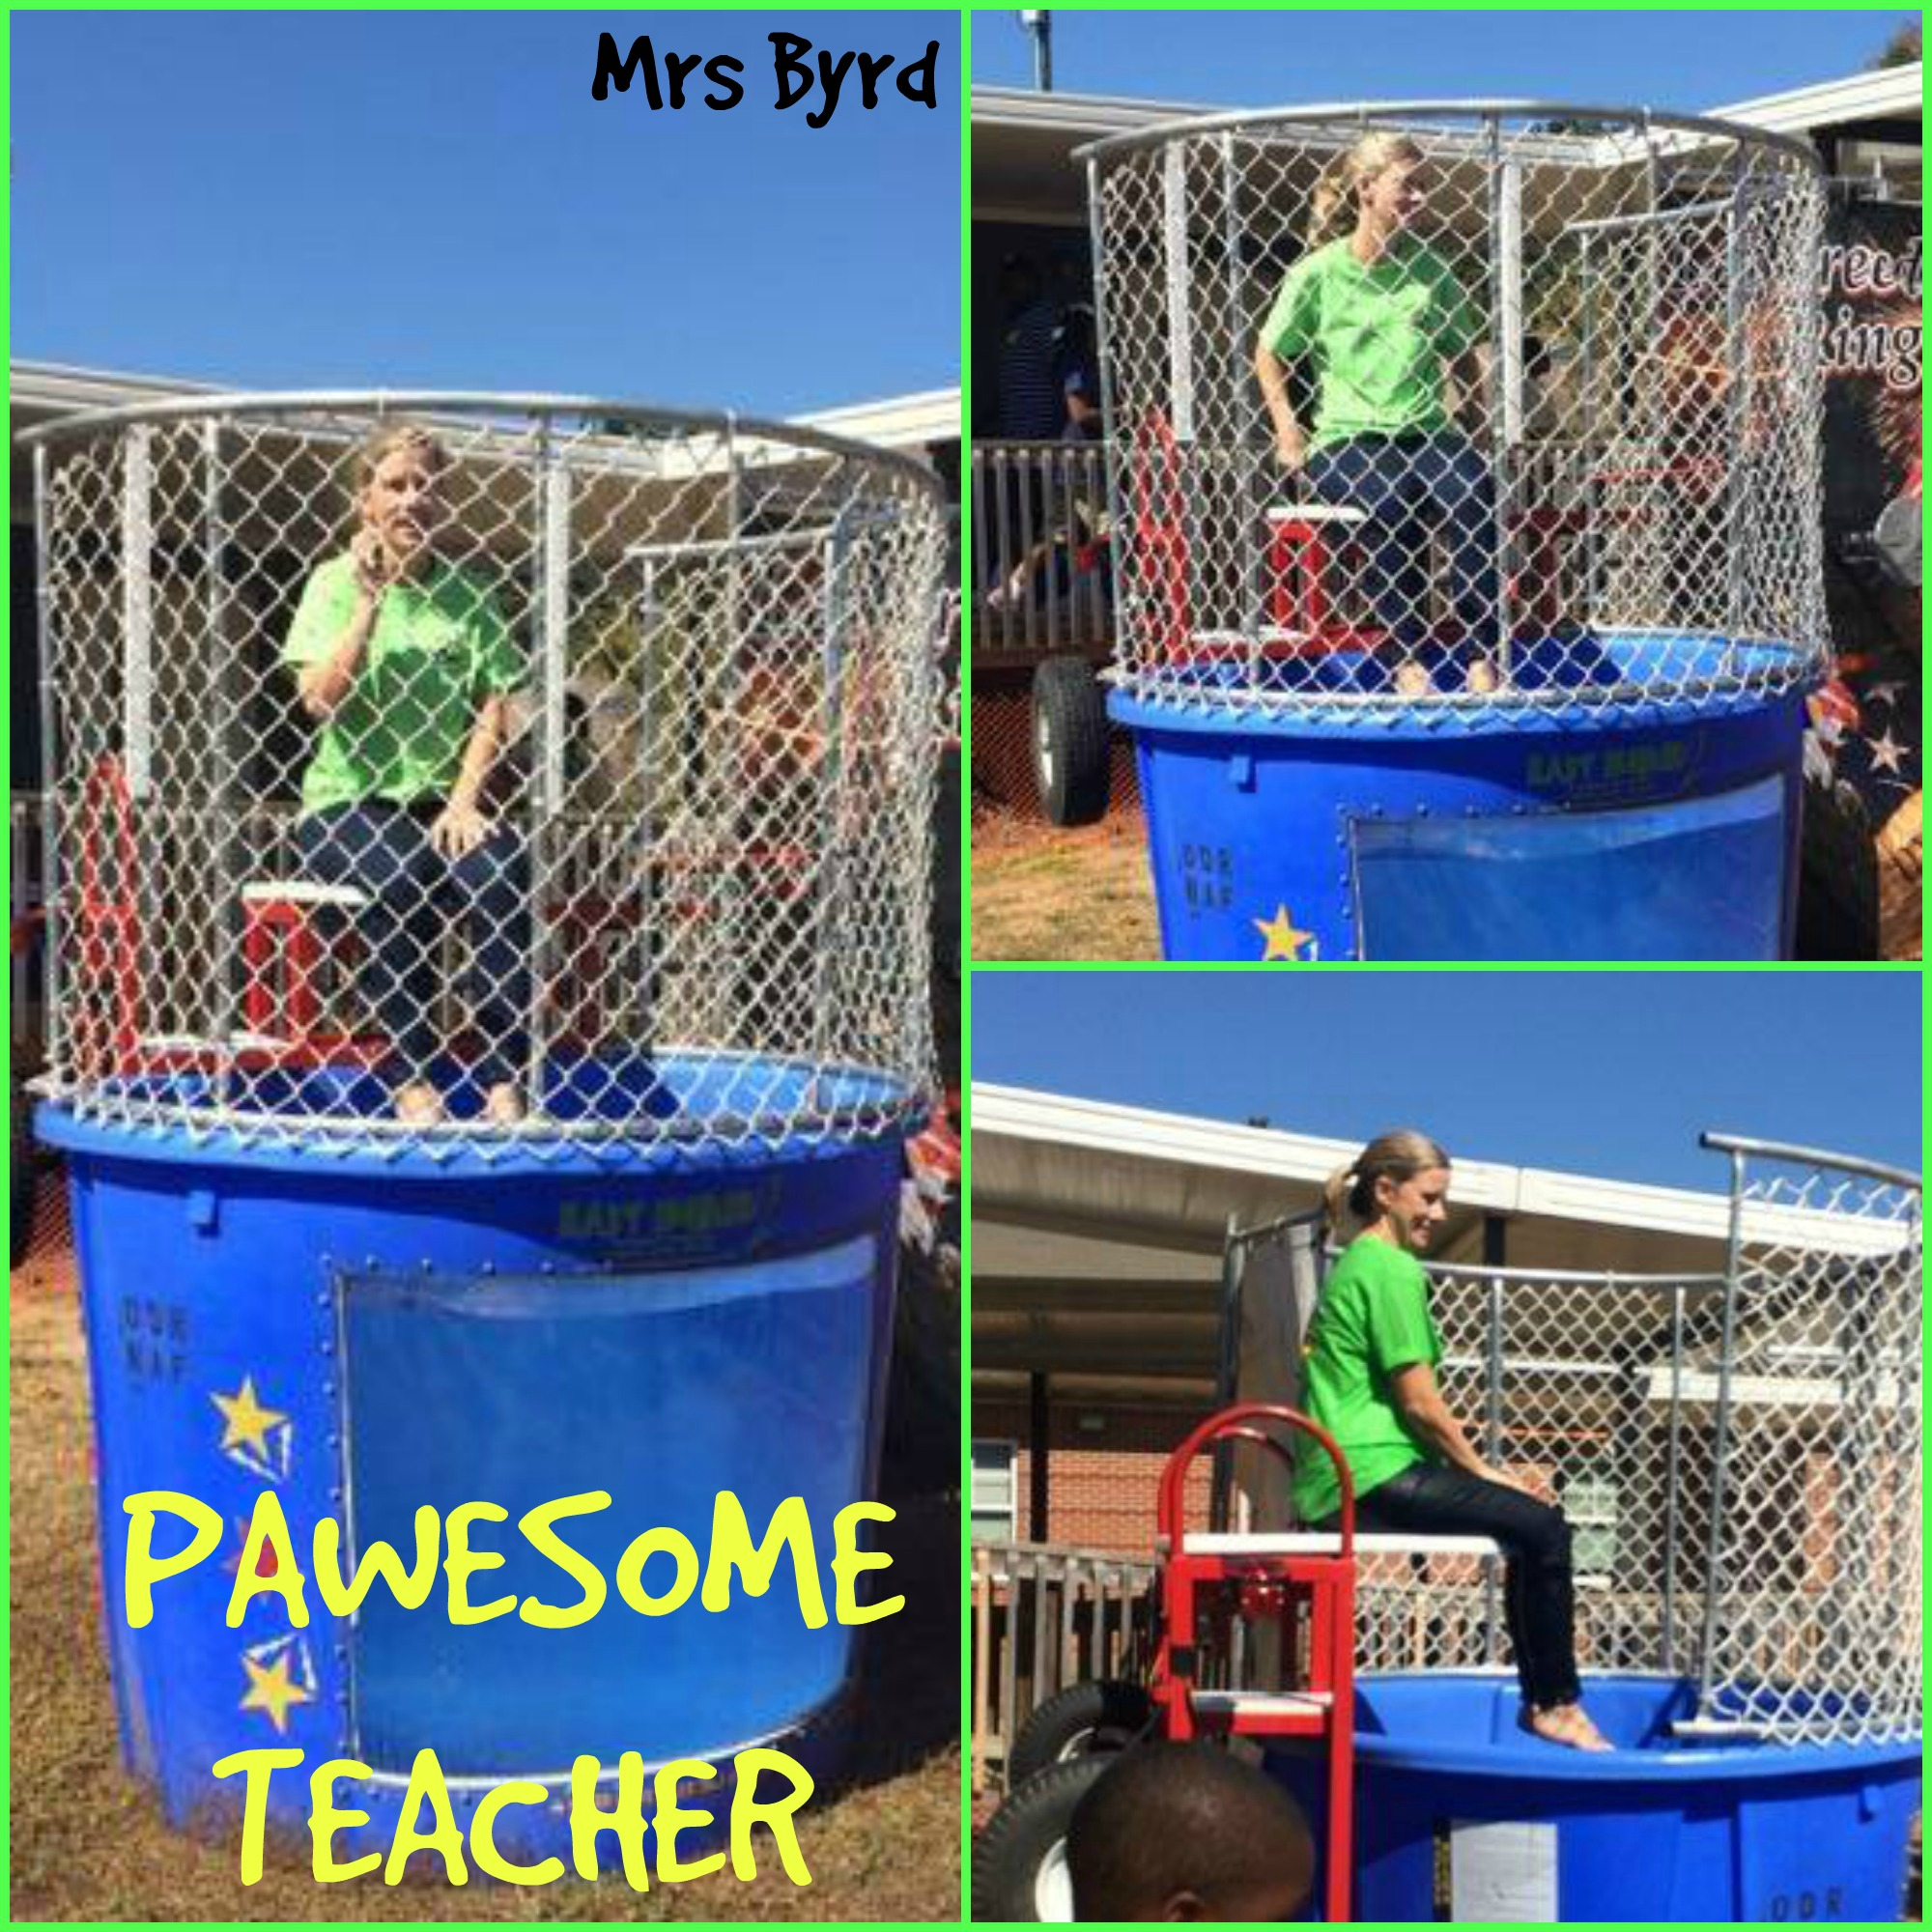 Mrs Byrd definitely earned being our PAWSOME Teacher this week! She volunteered to be in the dunk tank at the PE's Fun Day Fundraiser! Thank you Mrs Byrd for making the students' day!